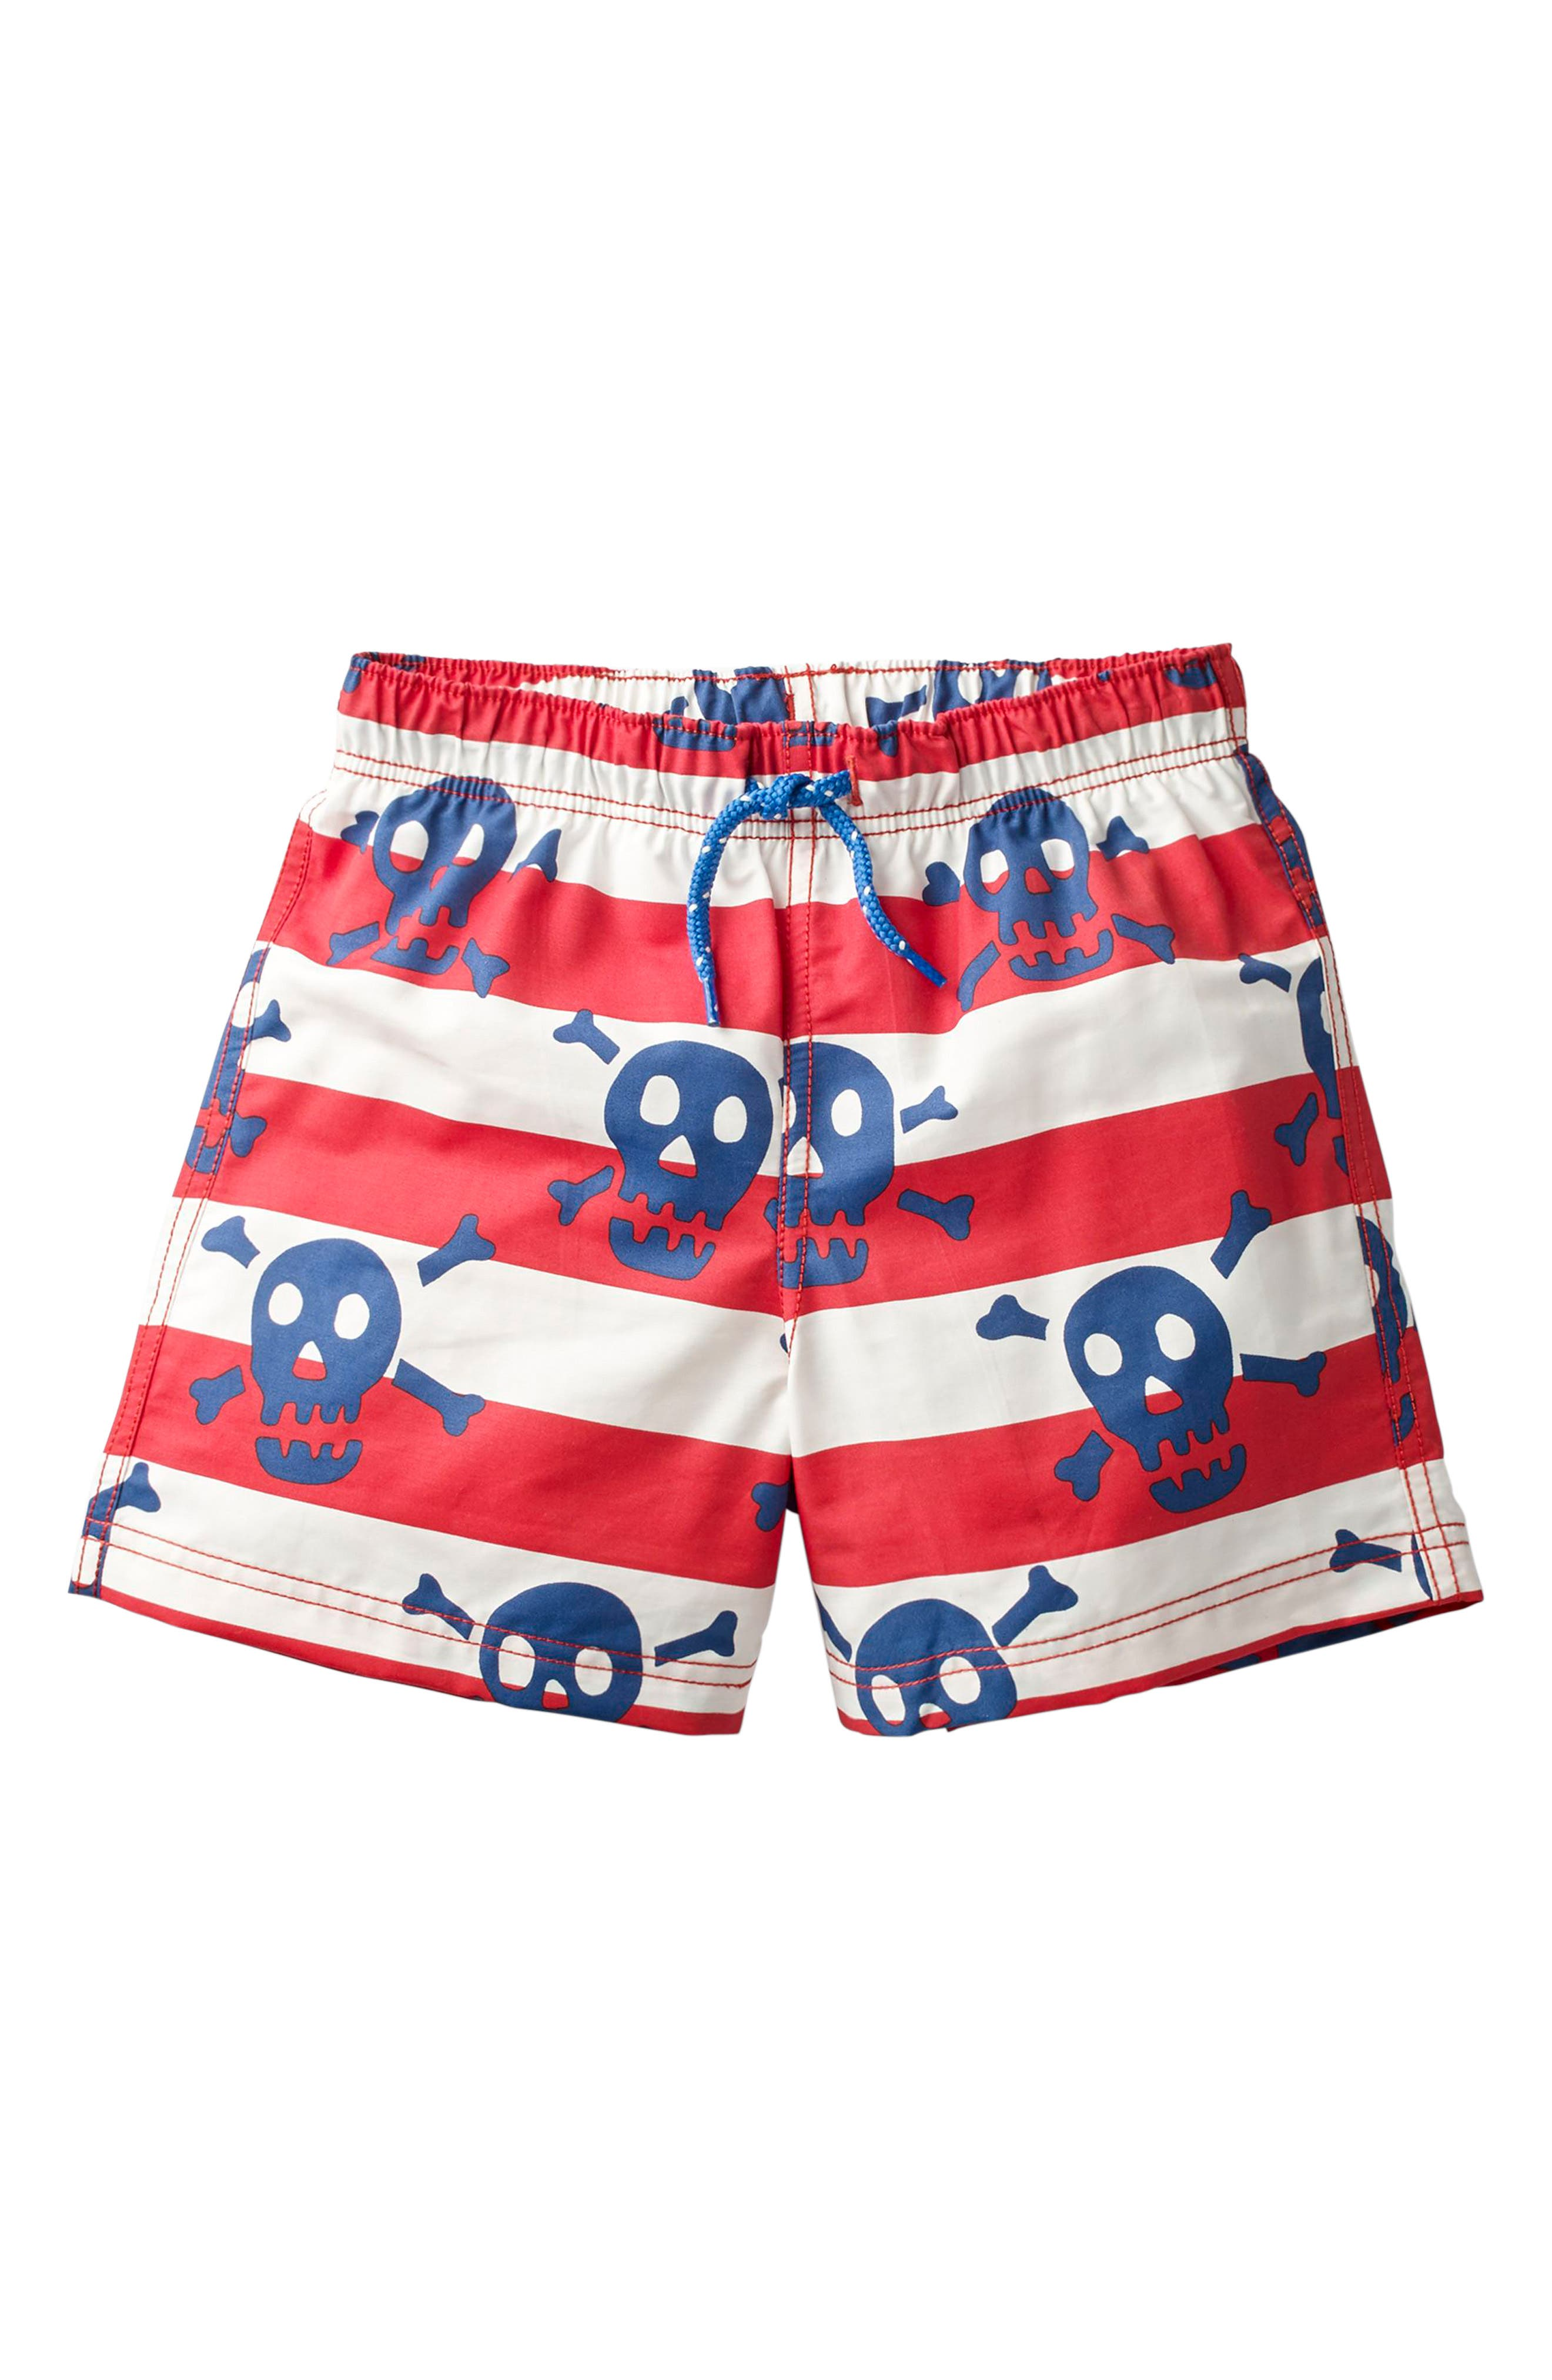 Bathers Skulls Swim Trunks,                             Main thumbnail 1, color,                             614